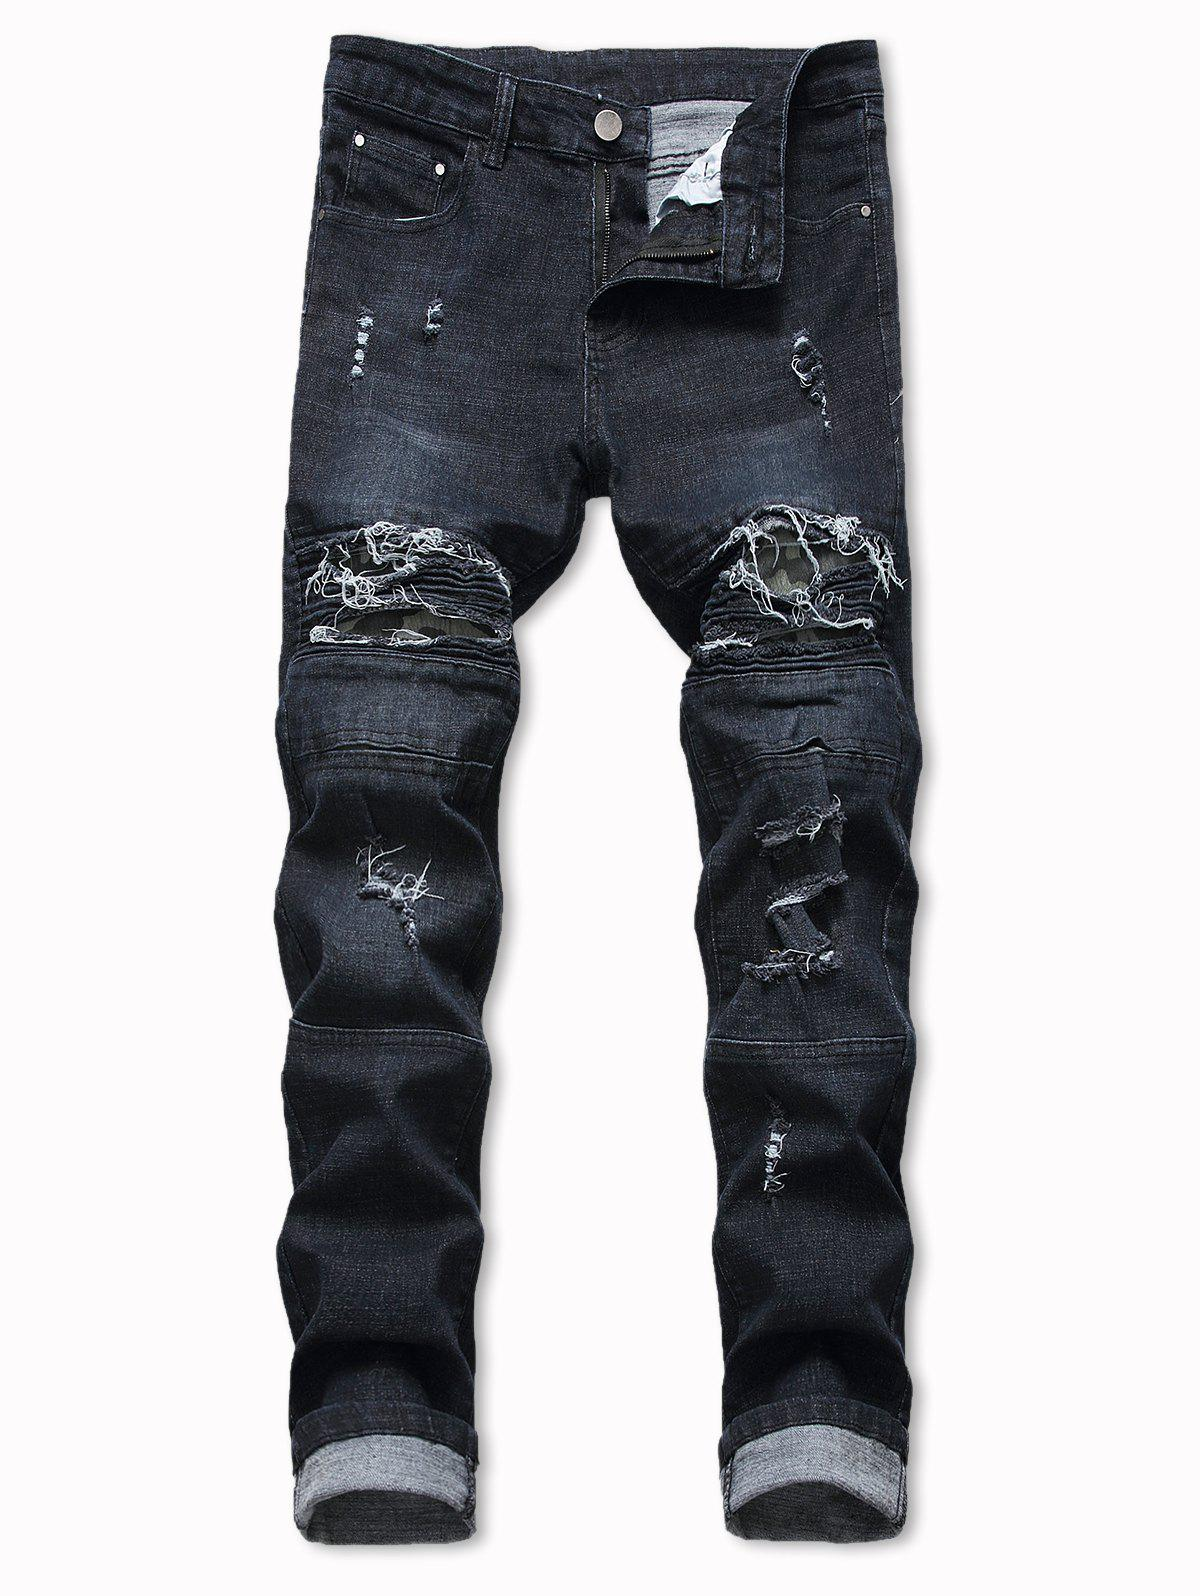 Distressed Destroy Wash Bike Jeans - BLACK 36